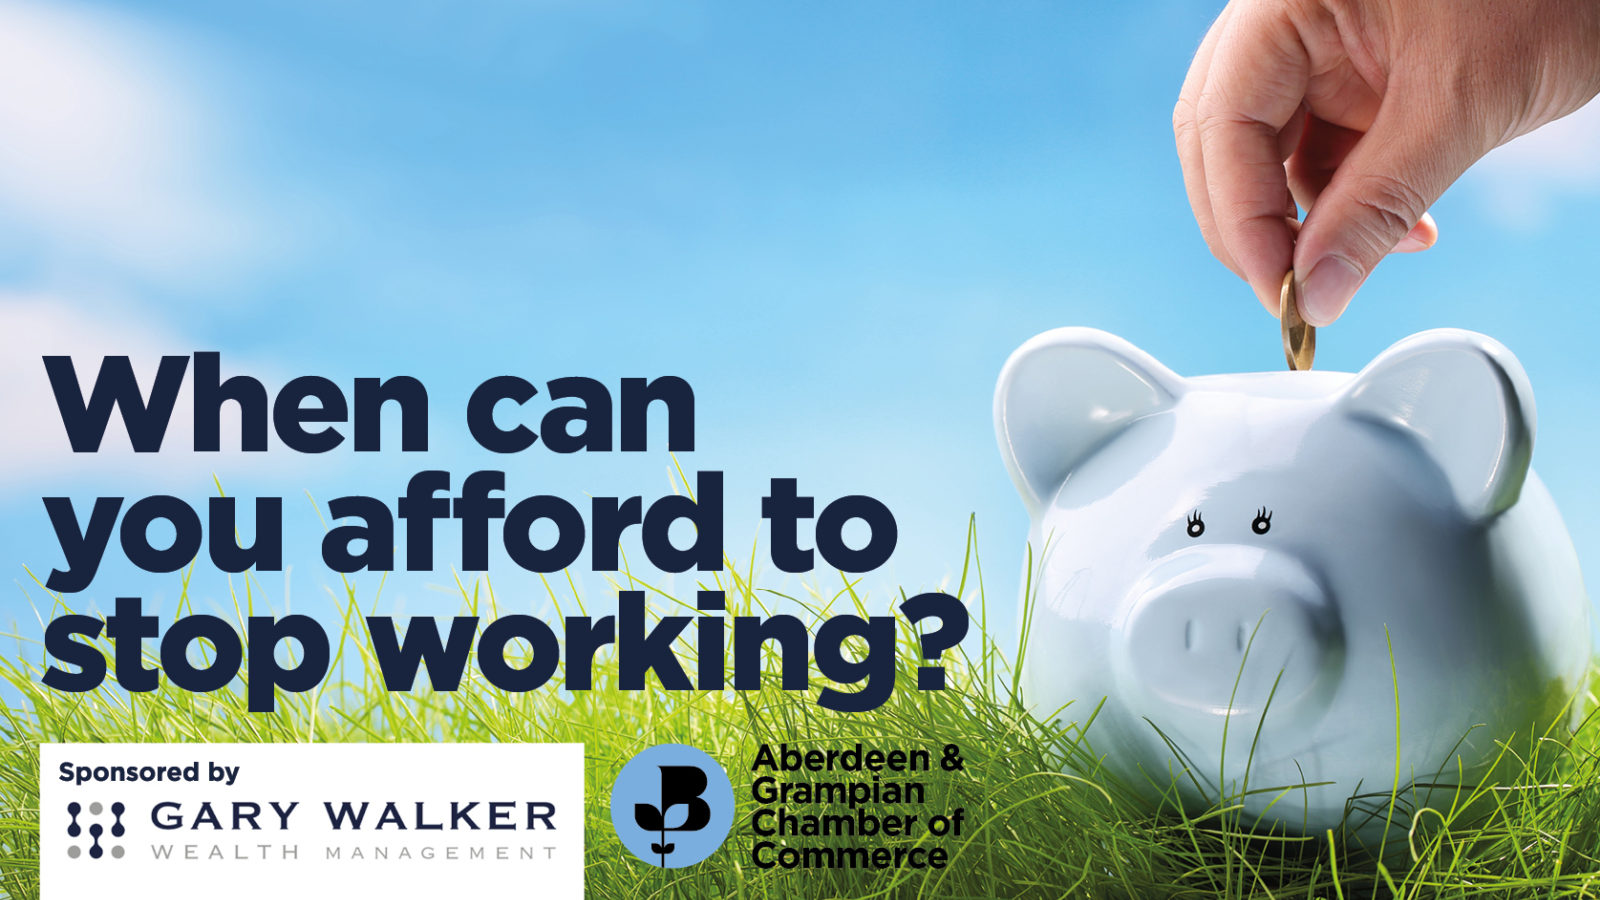 When can you afford to stop working?: 'A Masterclass in Personal Financial Planning'